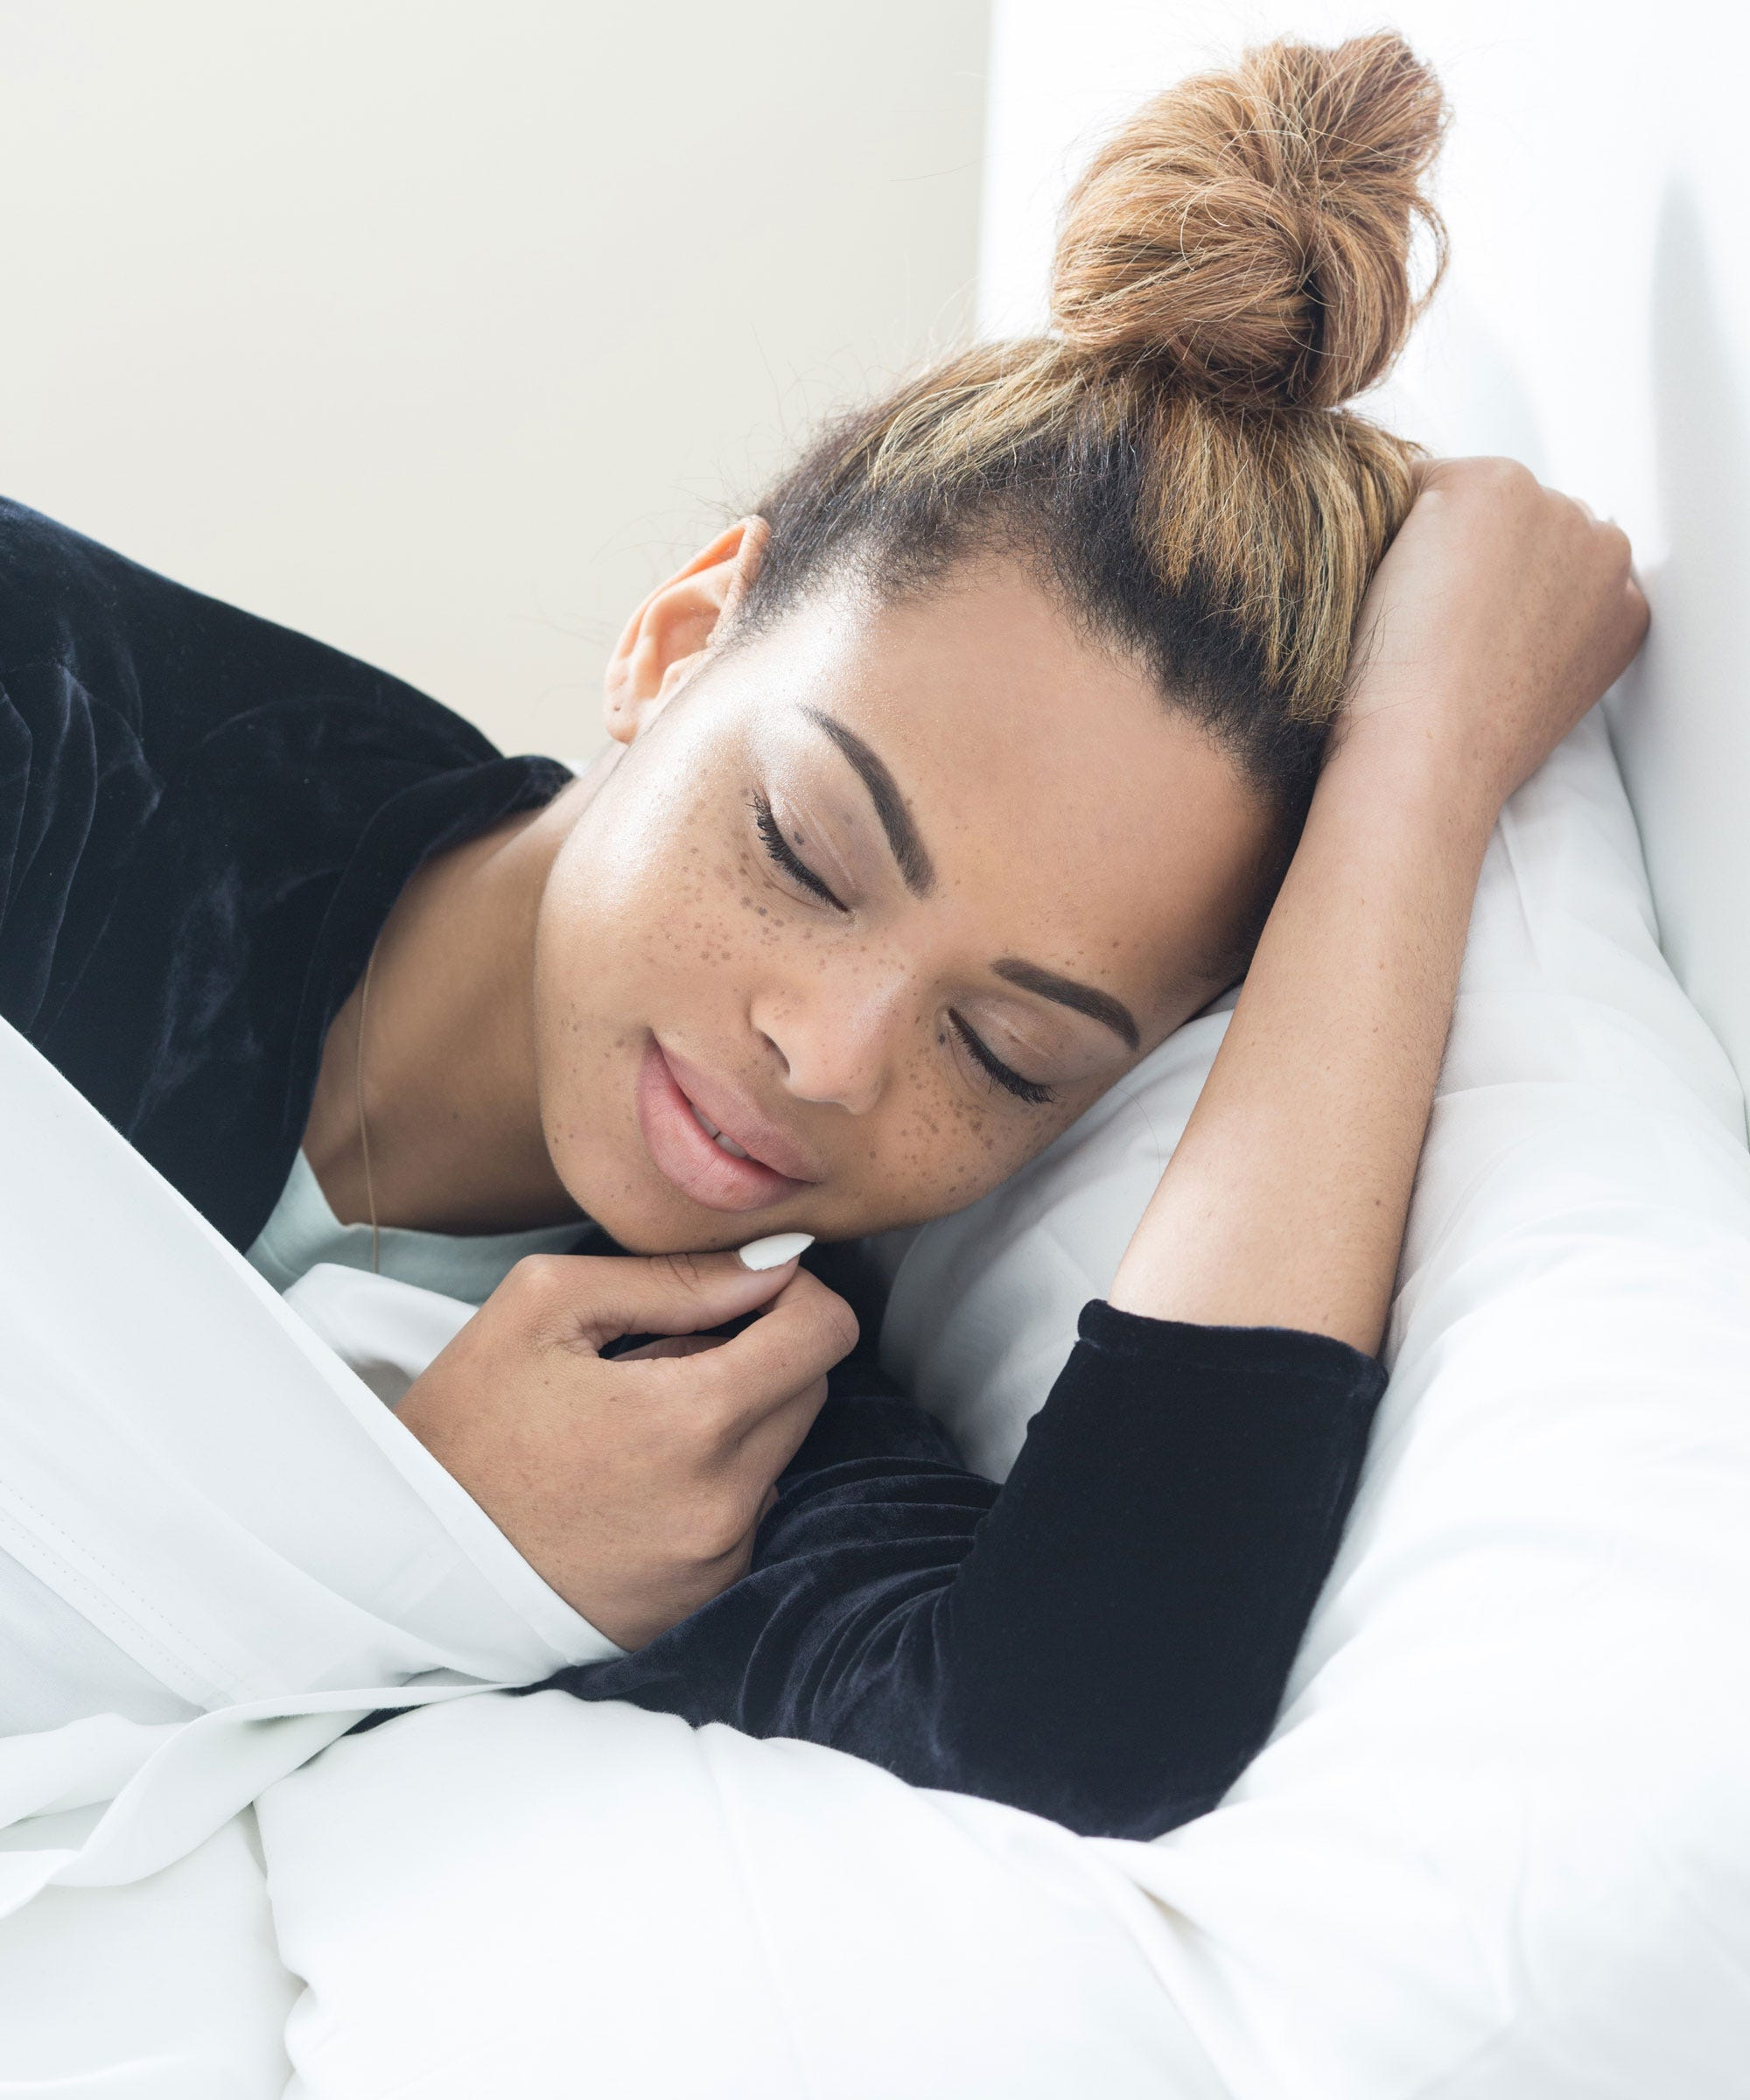 Discussion on this topic: Surefire Ways to Fall Asleep, surefire-ways-to-fall-asleep/